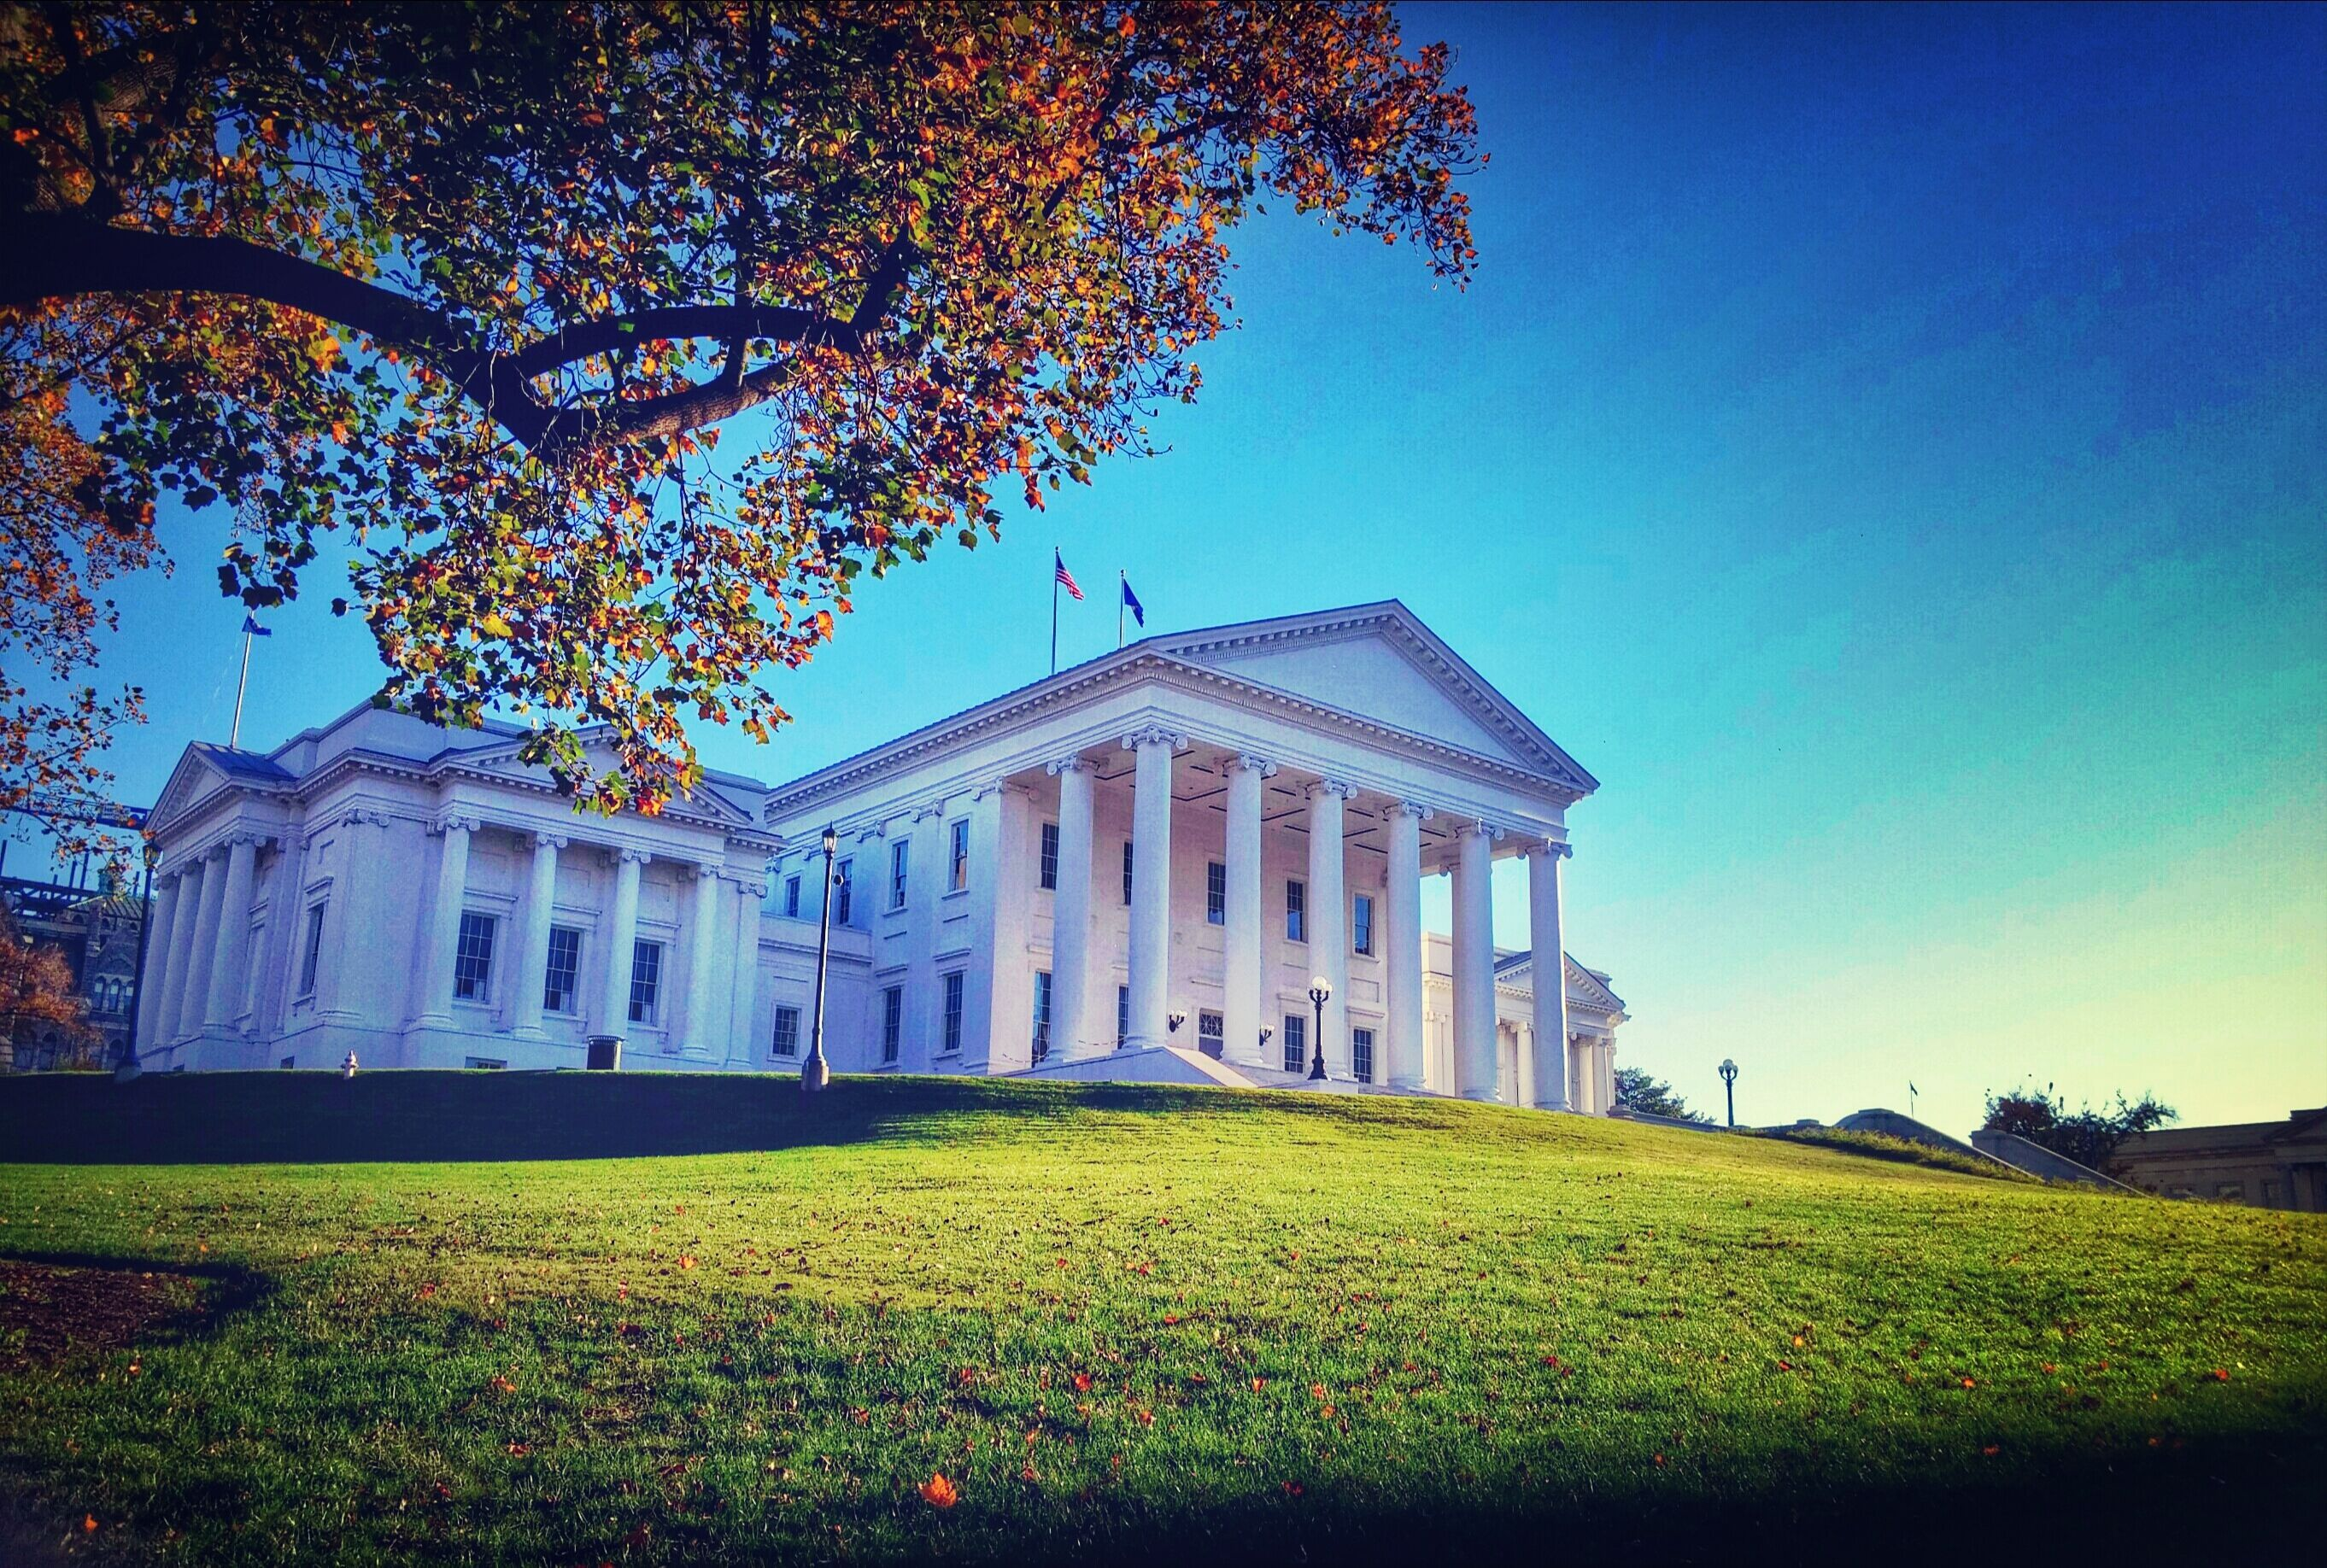 Virginia State Capitol Building On Field Against Blue Sky